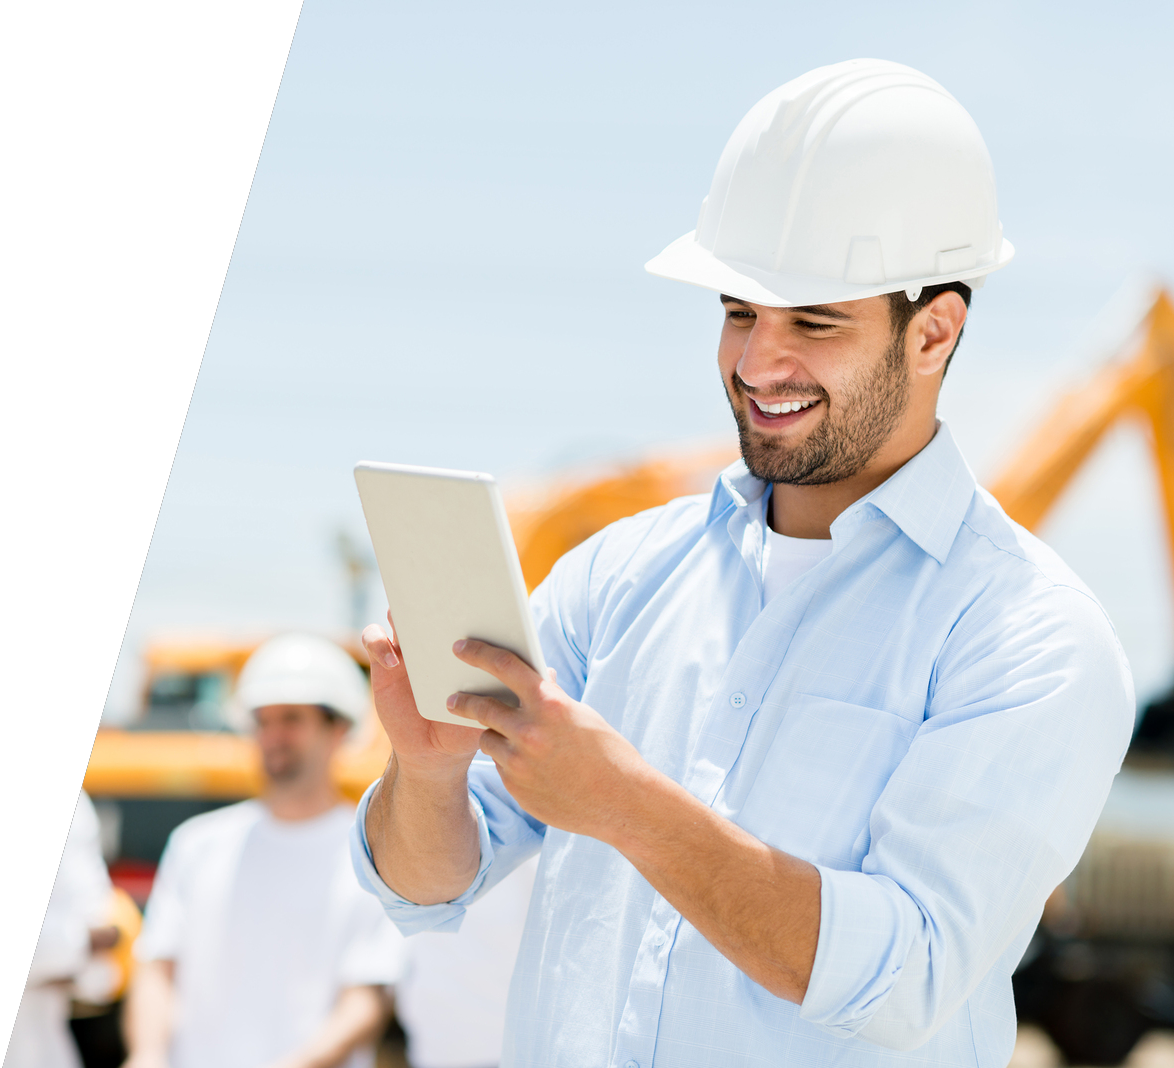 Contractor Software And Contractor Websites For Professionals